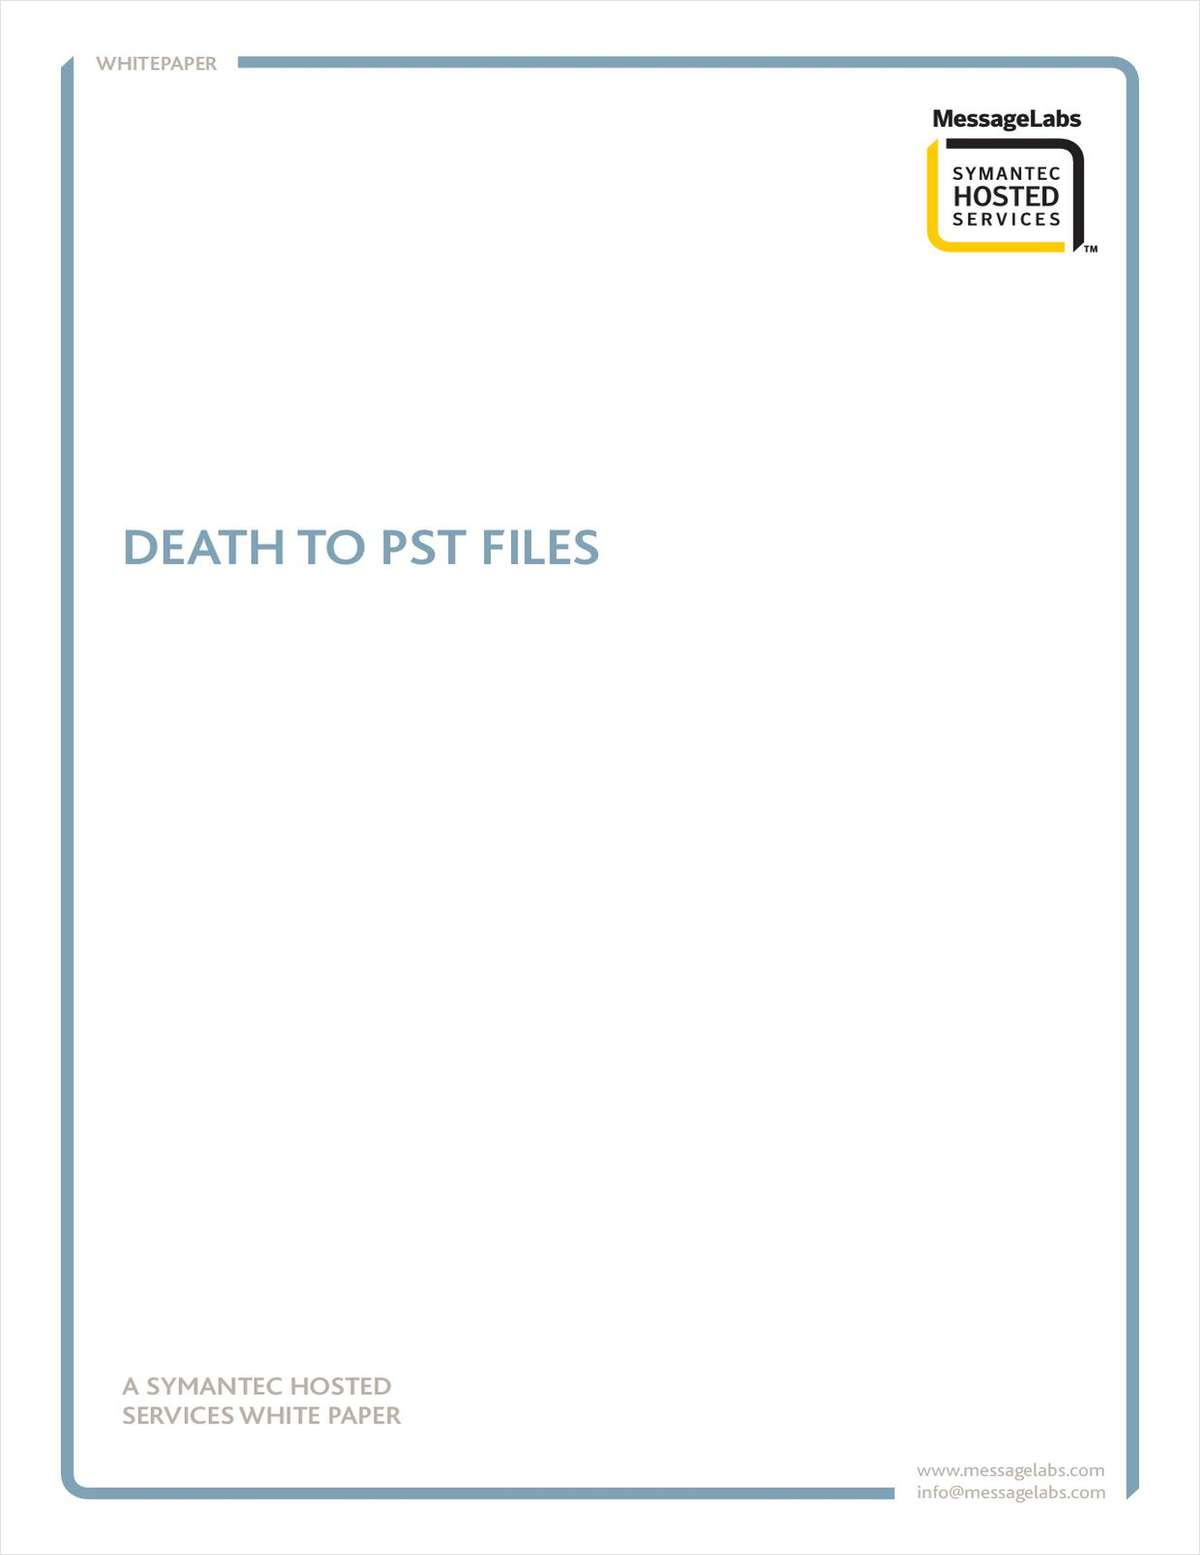 Death to PST Files